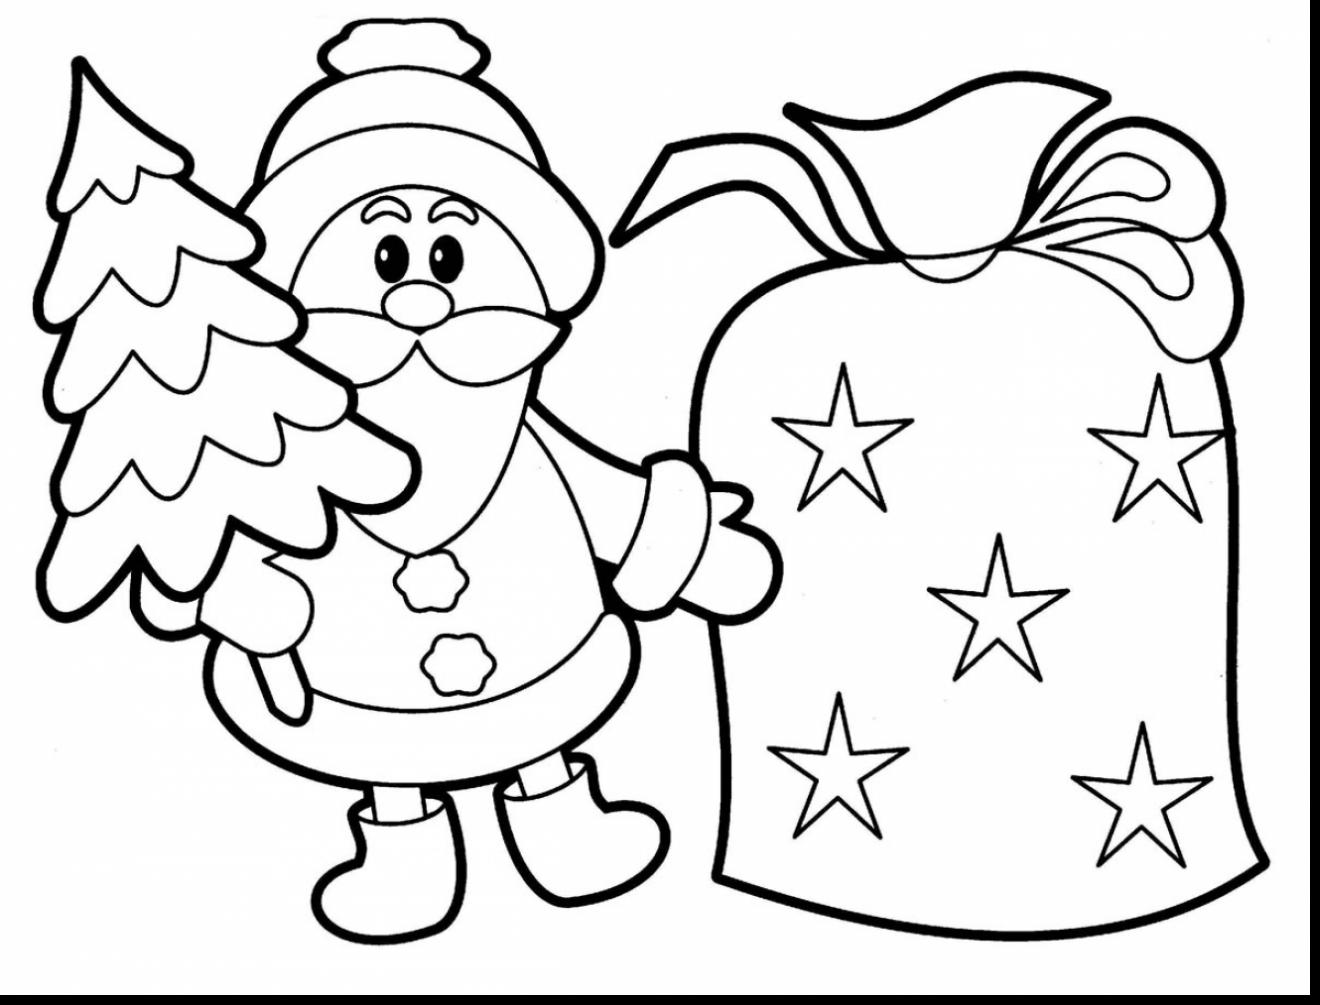 1320x1005 Amazing World Gumball Coloring Pages Alphabrainsz Net Inside